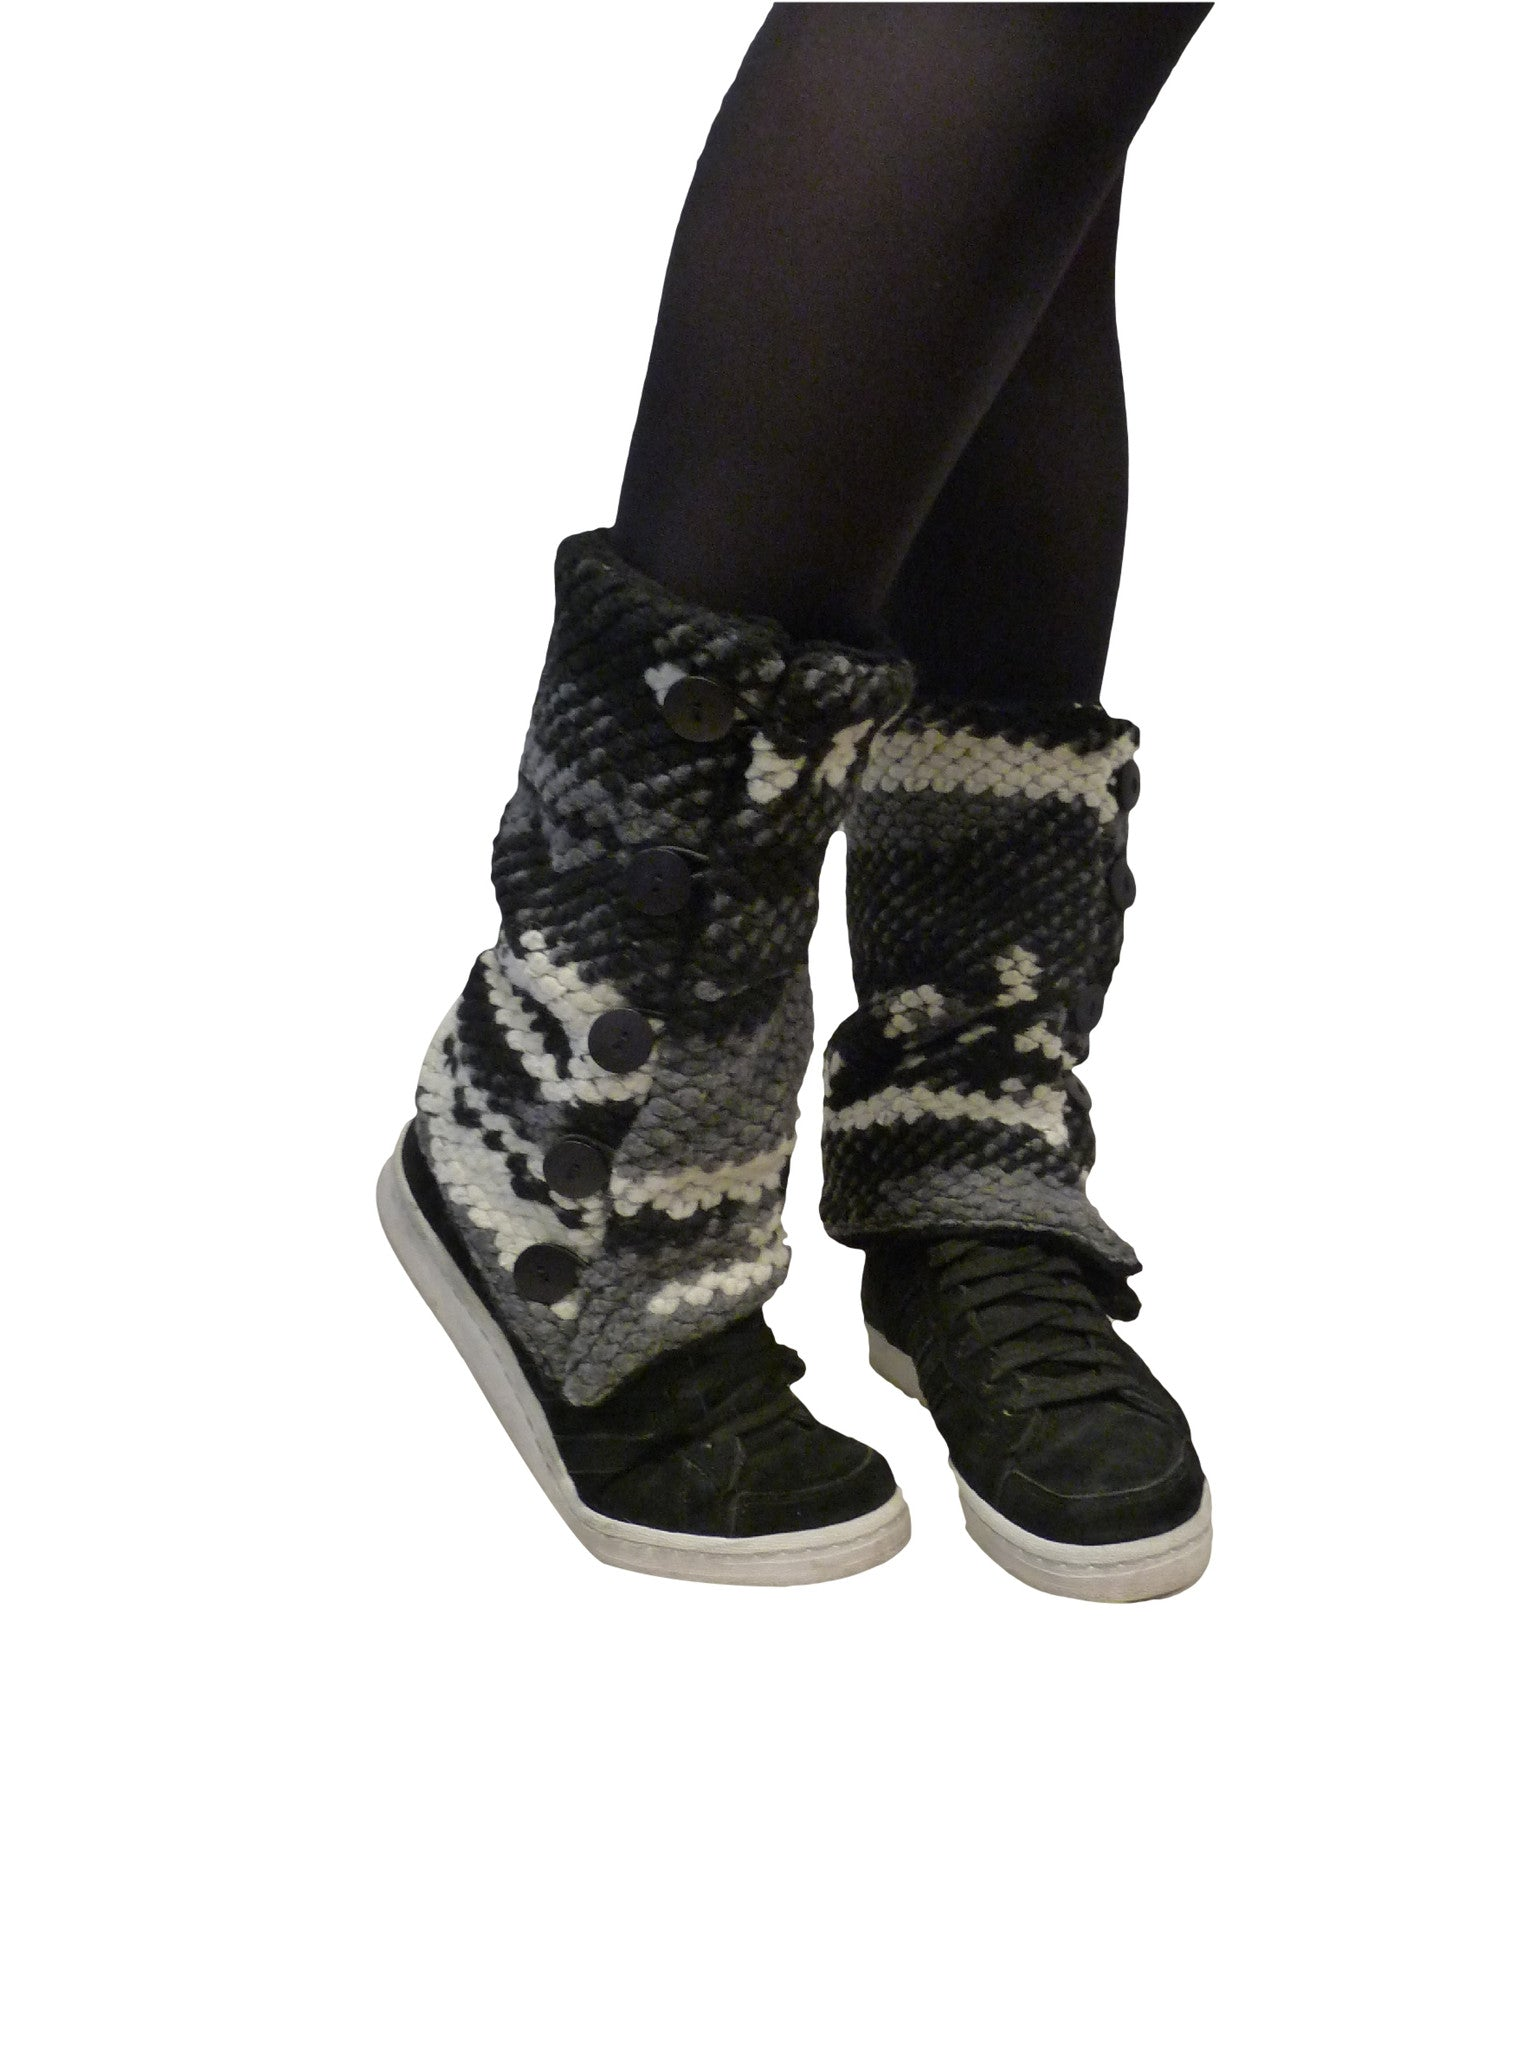 Mountain Leg Warmers